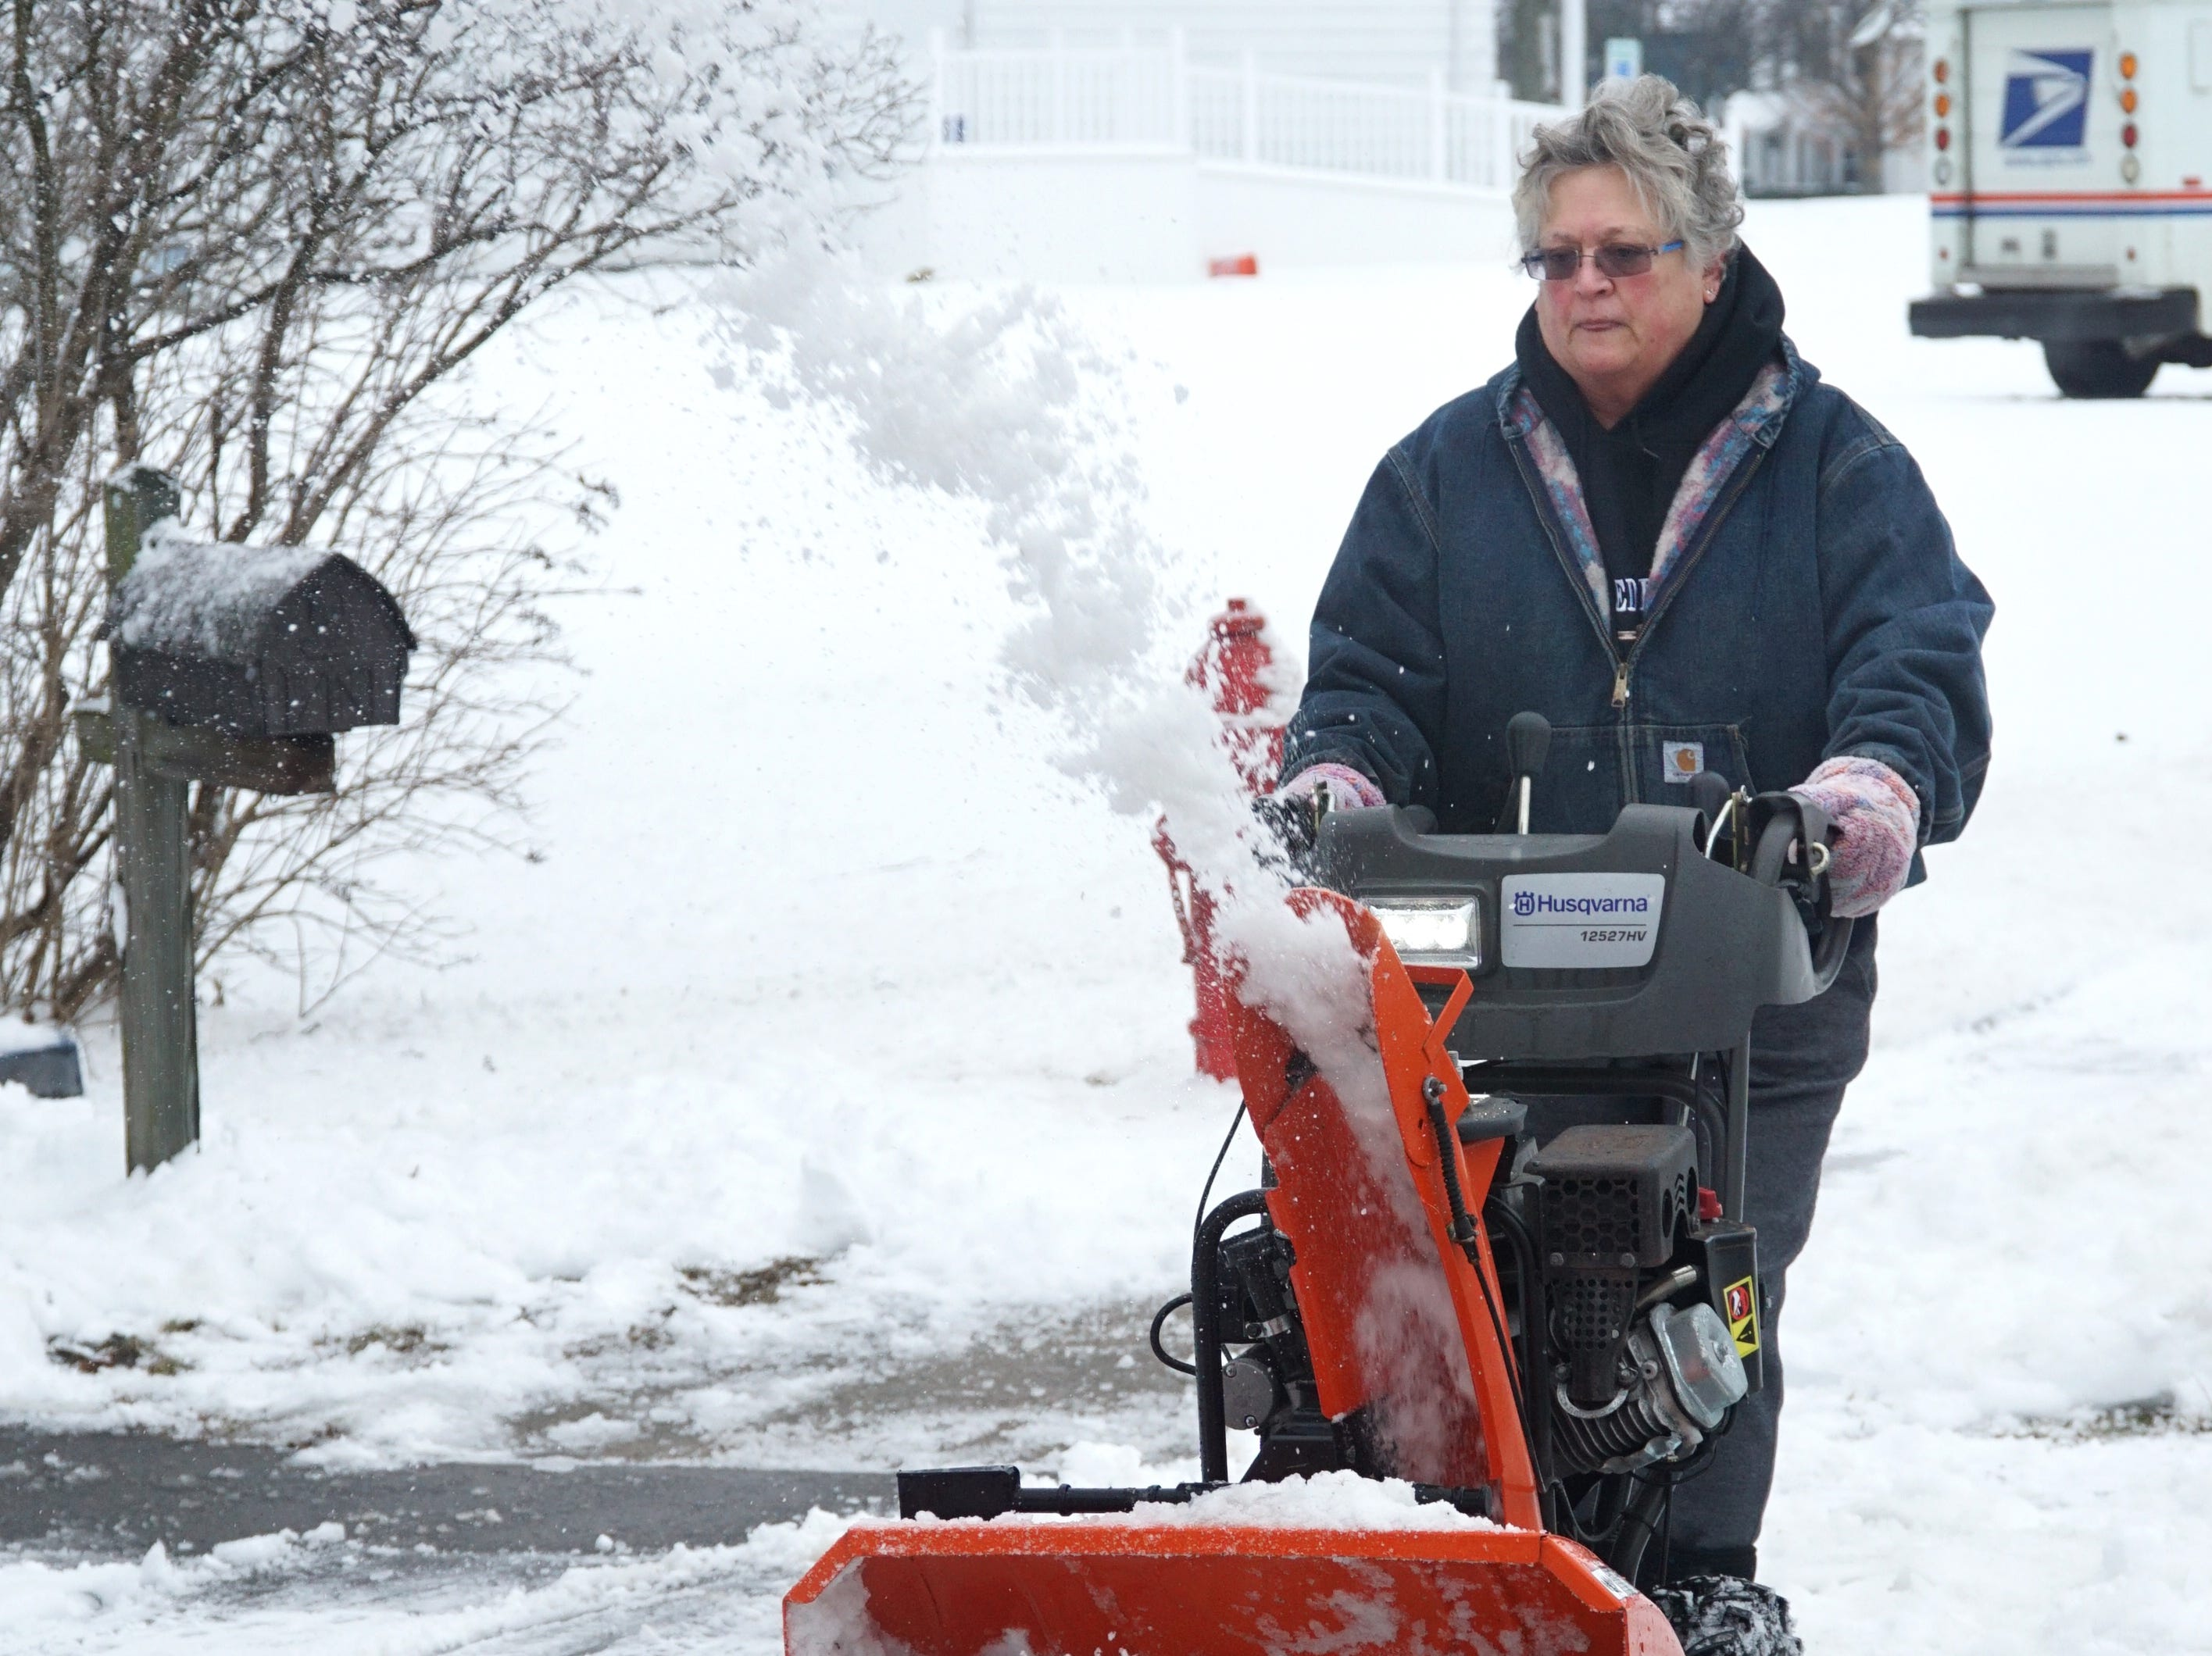 Walled Lake's Mayor Linda Ackley clears snow from her driveway near the Oakland County town's north end on Feb. 12. Ackley has been mayor since 2013 and needed some time that day to clear a lot of snow and ice from in front of her home.